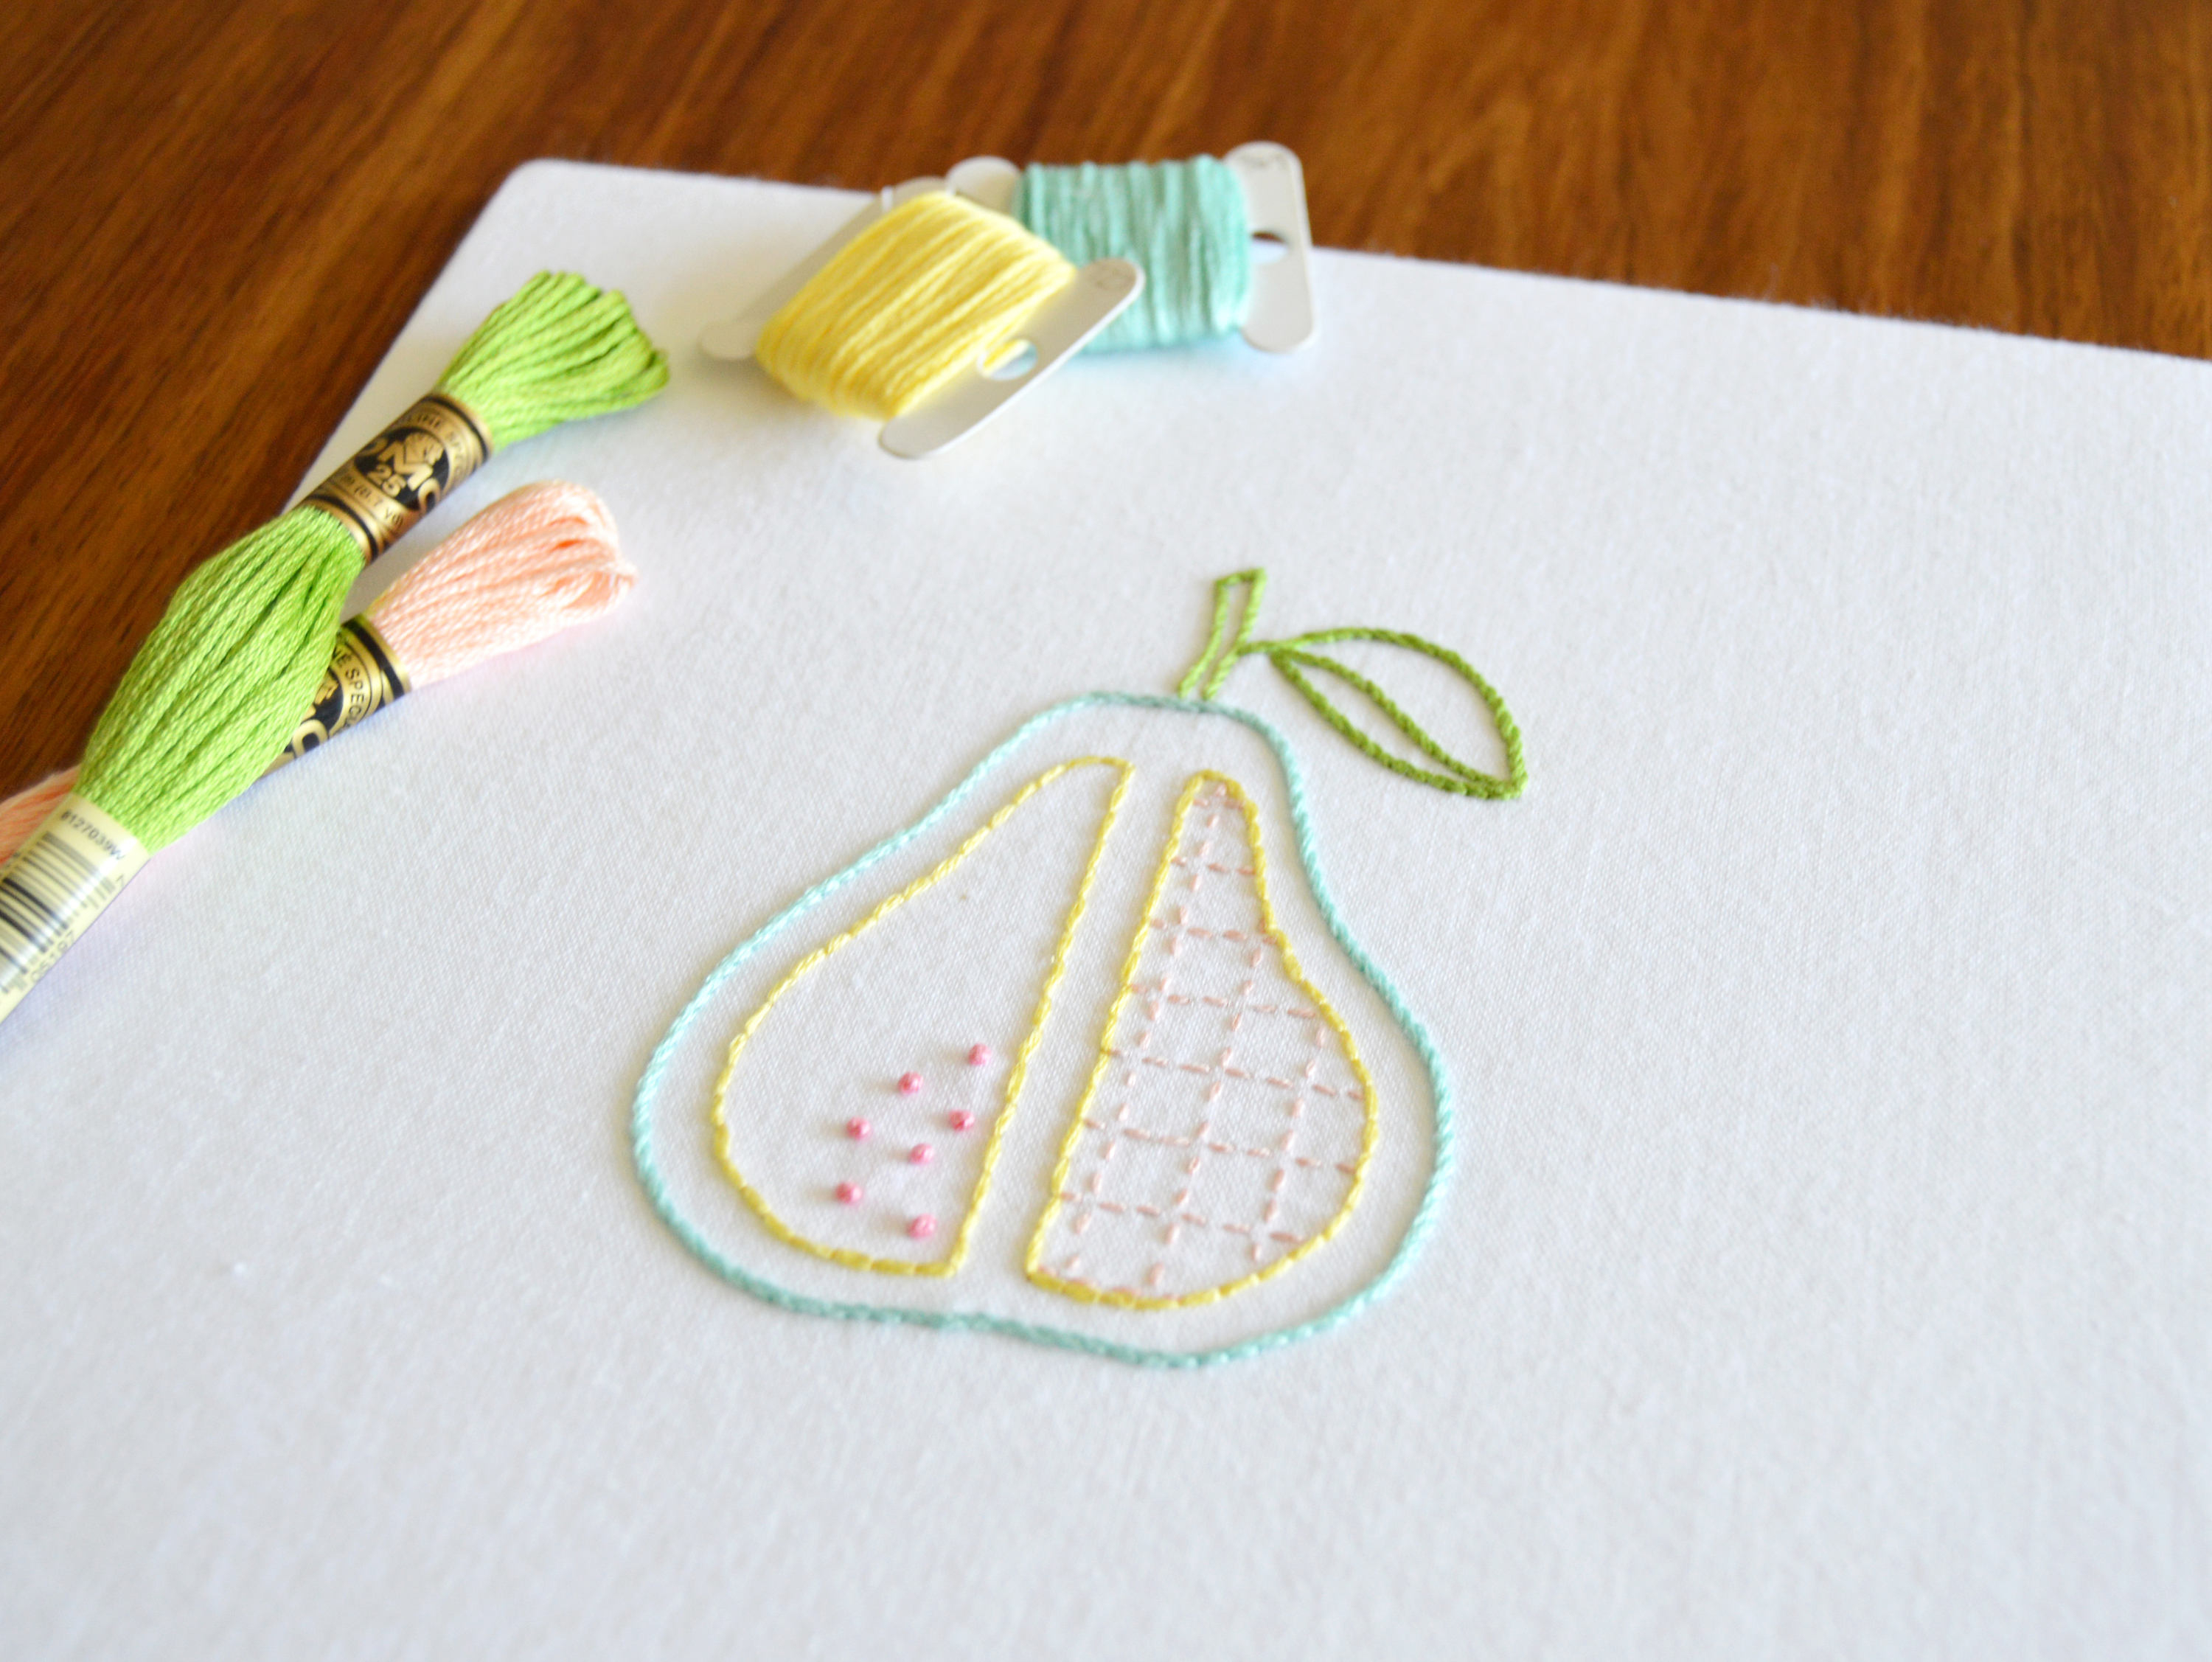 How To Design Embroidery Patterns By Hand Cleaver Pear Hand Embroidery Pattern Modern Embroidery Fruit Design Embroidery Patterns Embroidery Pdf Pdf Pattern